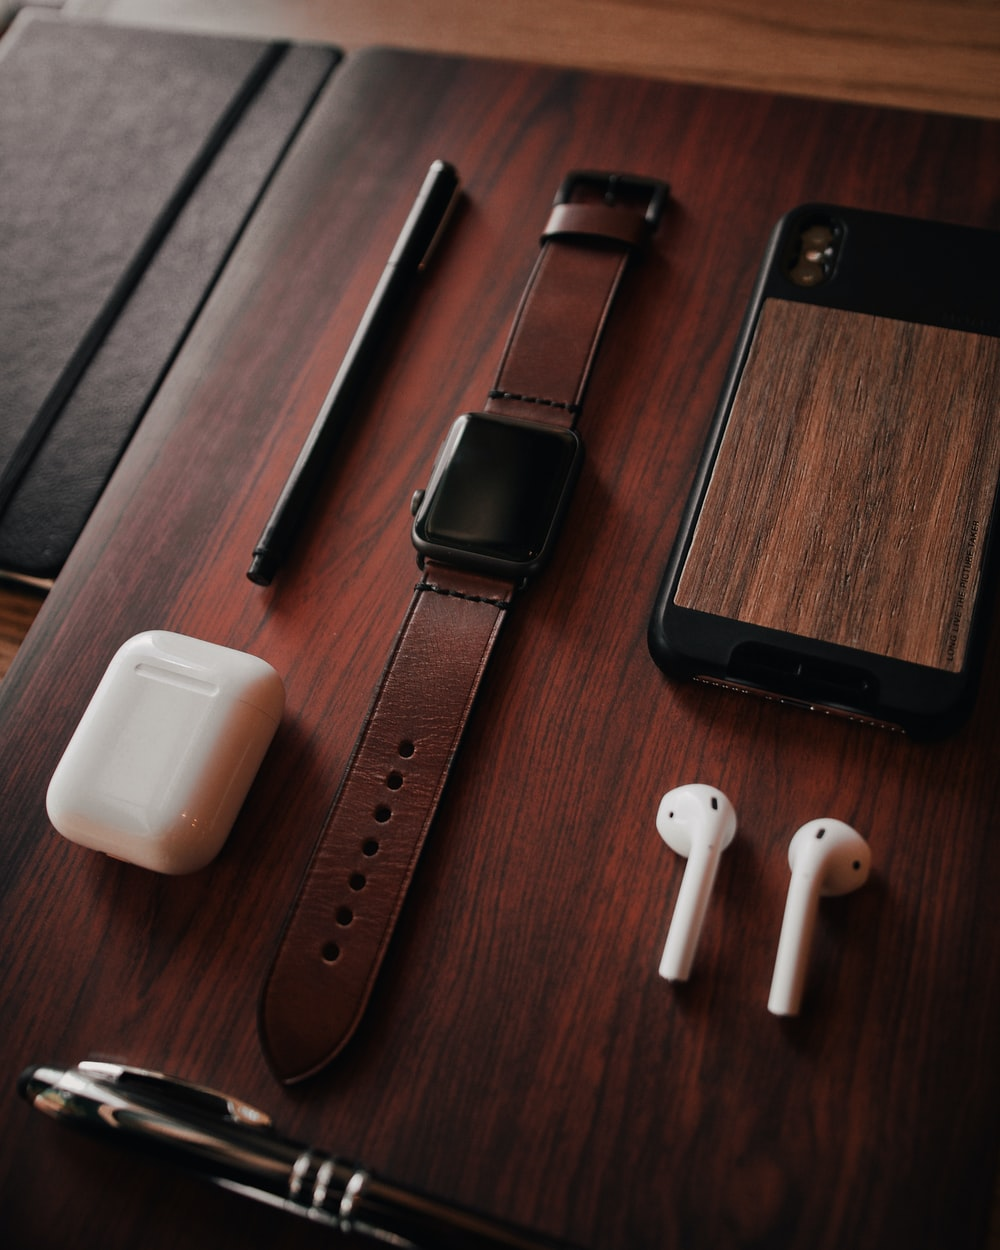 black aluminum Apple Watch with brown leather band, Apple AirPods with case, black pen, and brown and black case on brown wooden surface